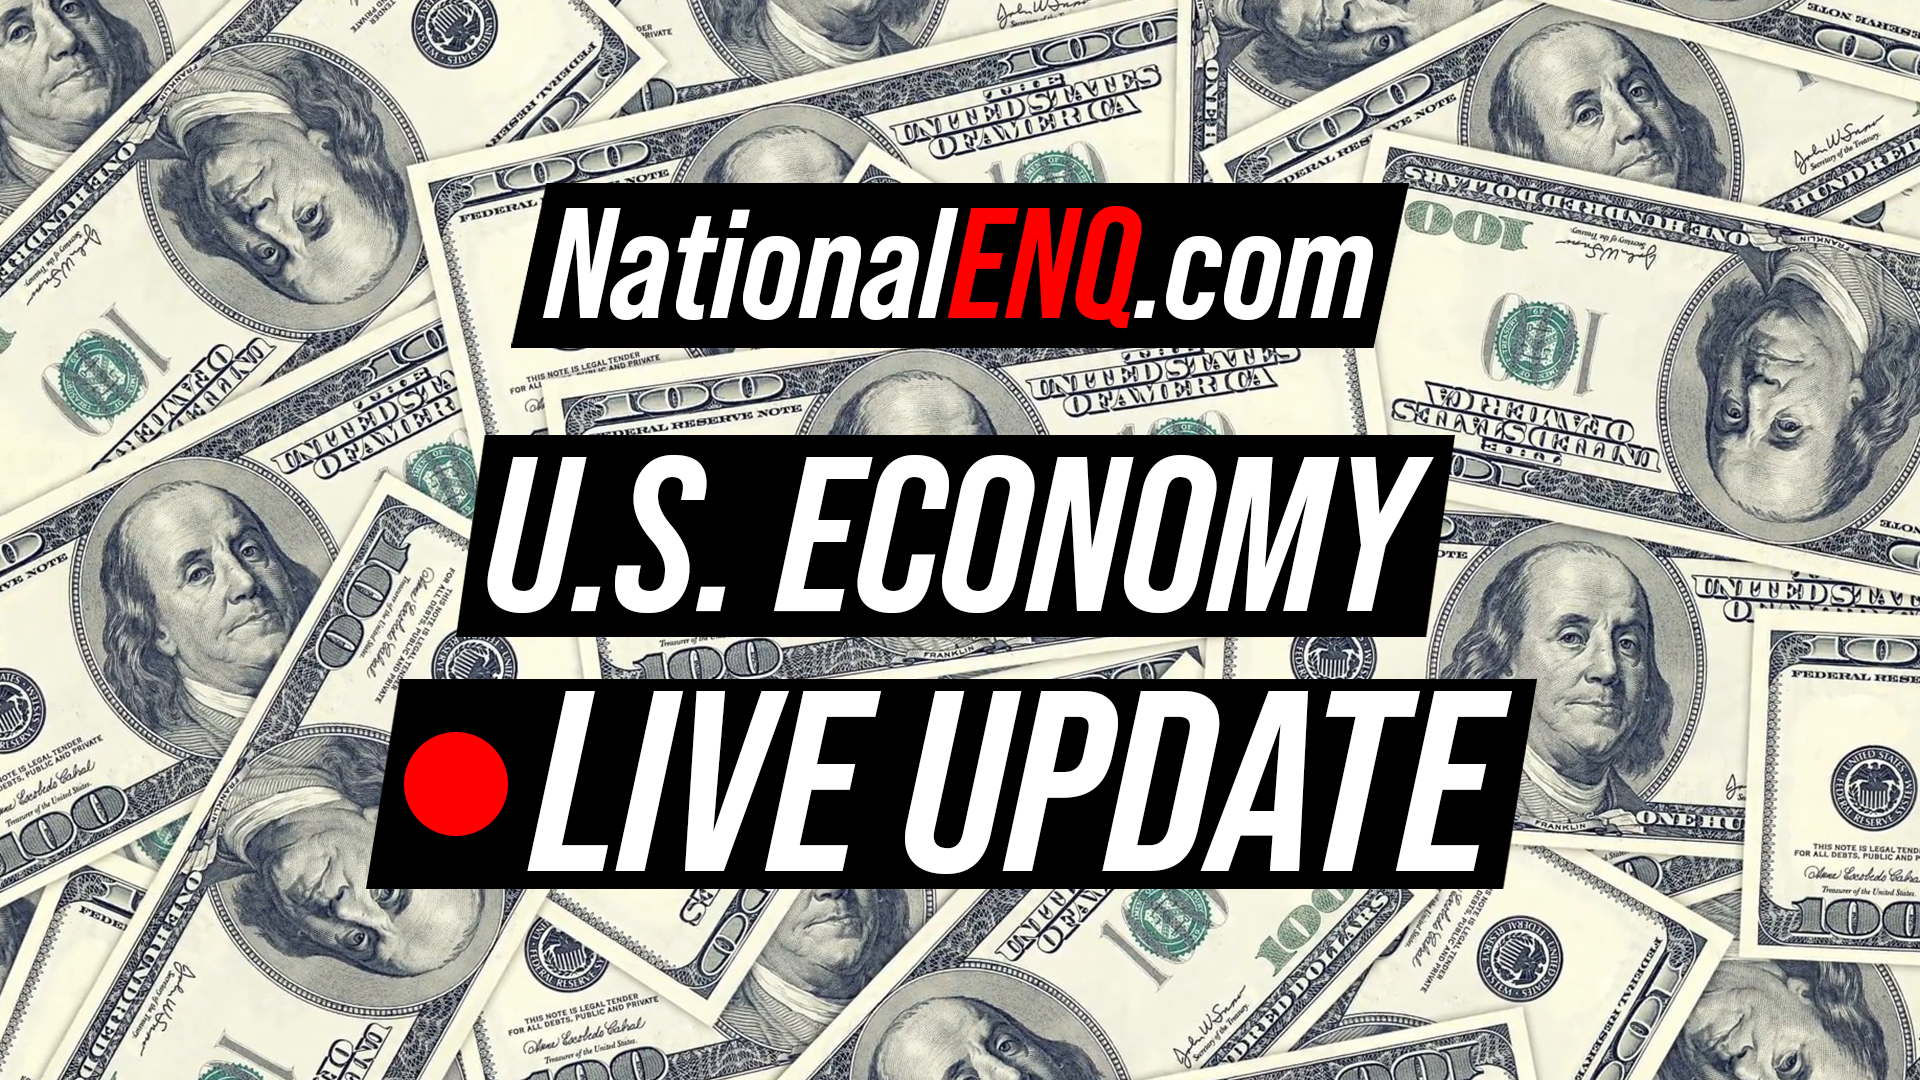 National ENQ Economy Live Update: U.S. Fighting Recession, Stimulus Package Bill Passed